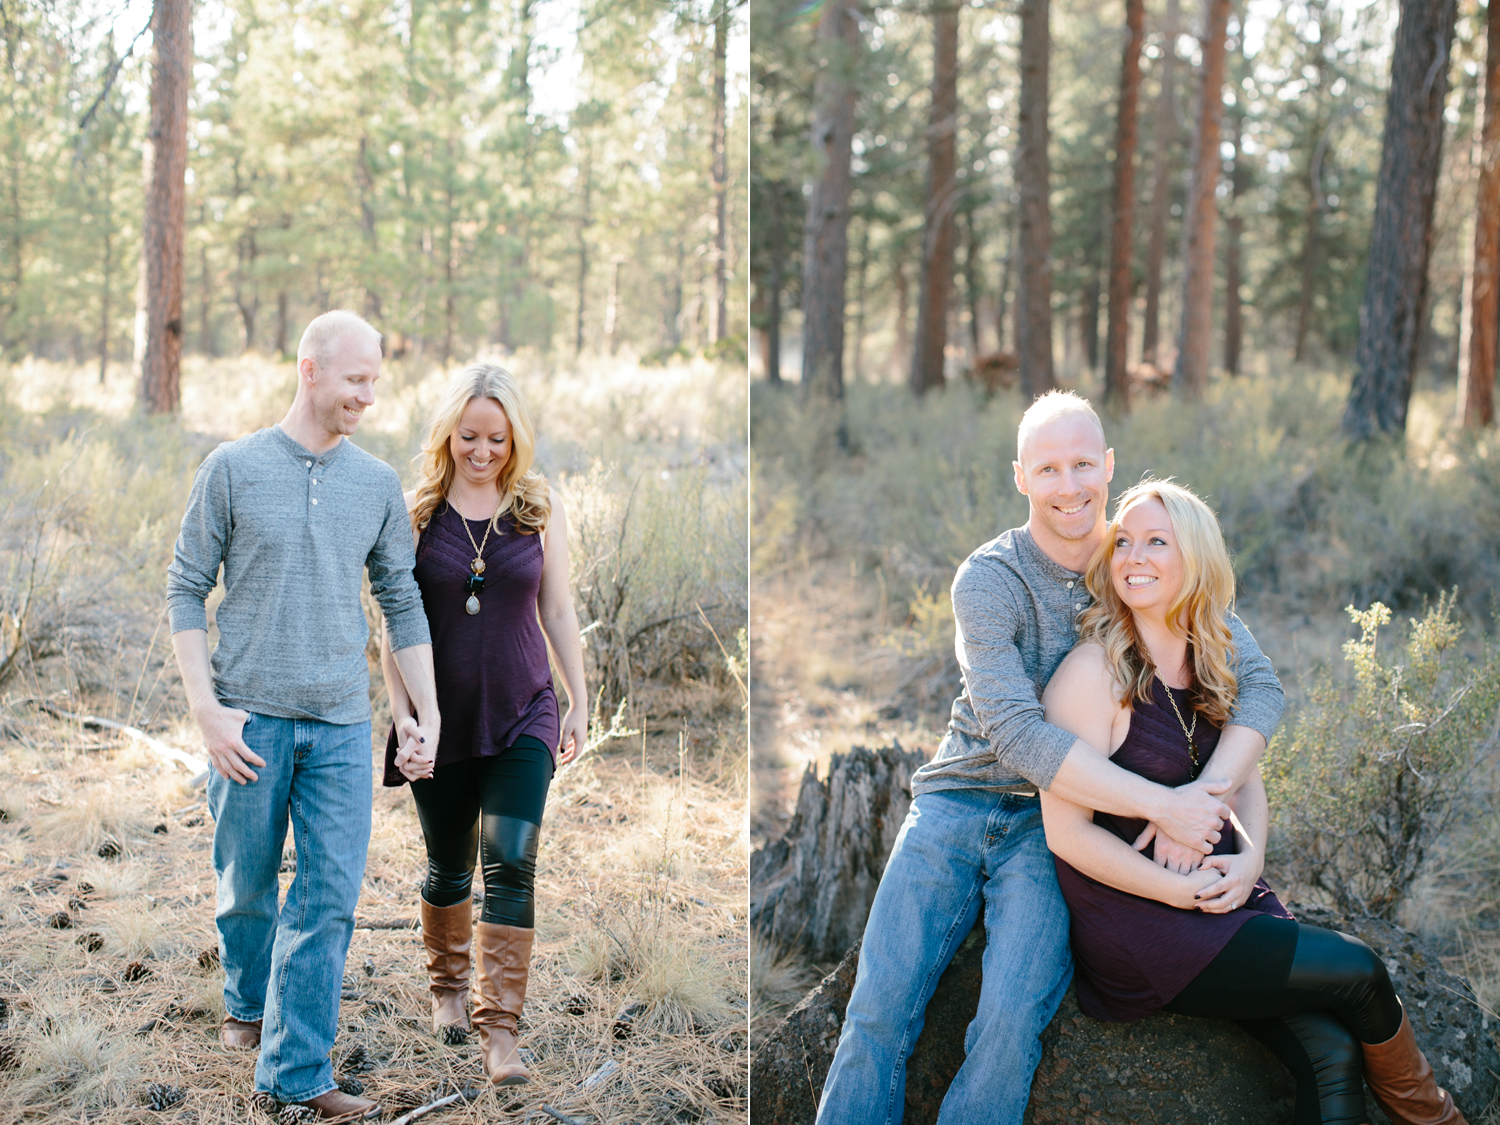 Bend Oregon Engagement by Michelle Cross - 3.jpg